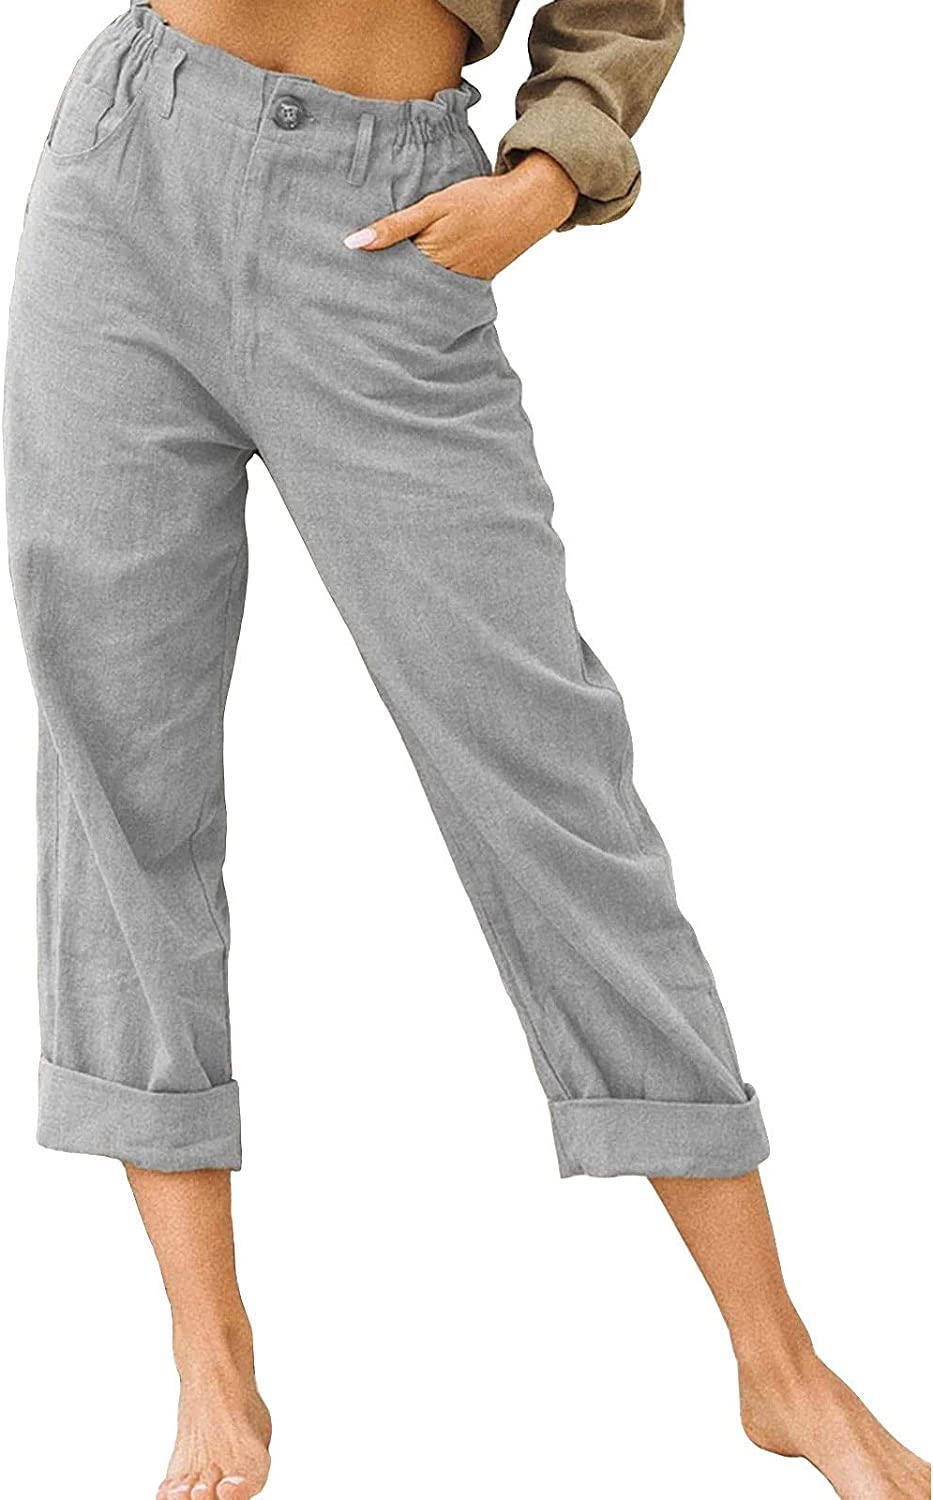 Changeshopping Pants for Women,Summer Cotton and Linen Solid Color Pants,Women Drawstring Elastic Waist Pants with Pockets